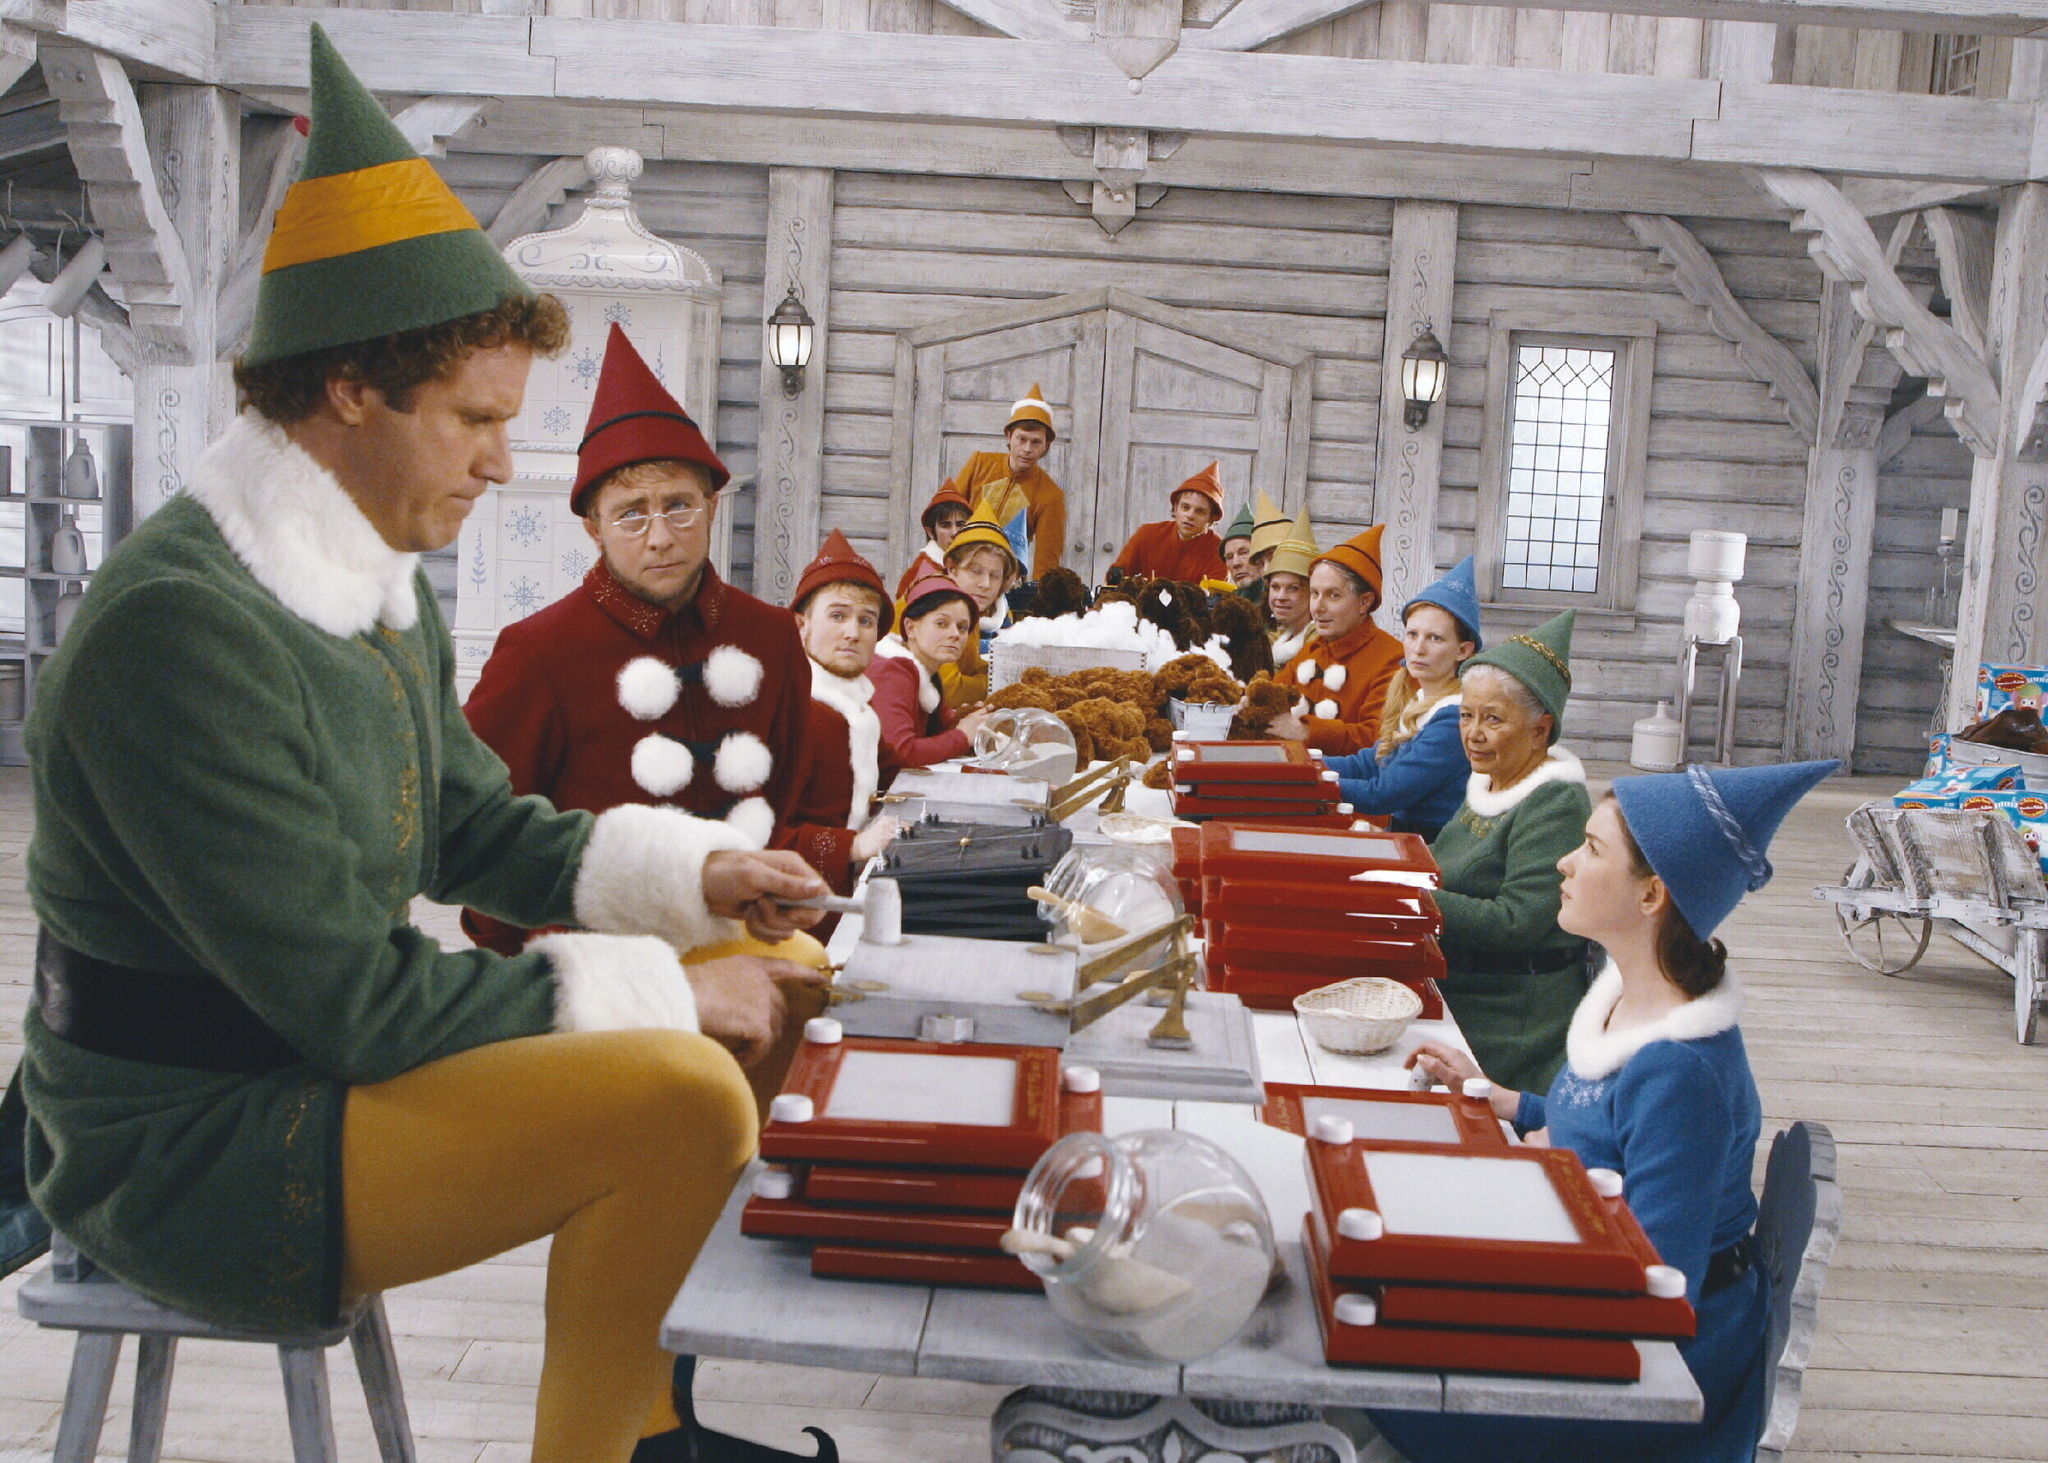 how does santa manage inventory?